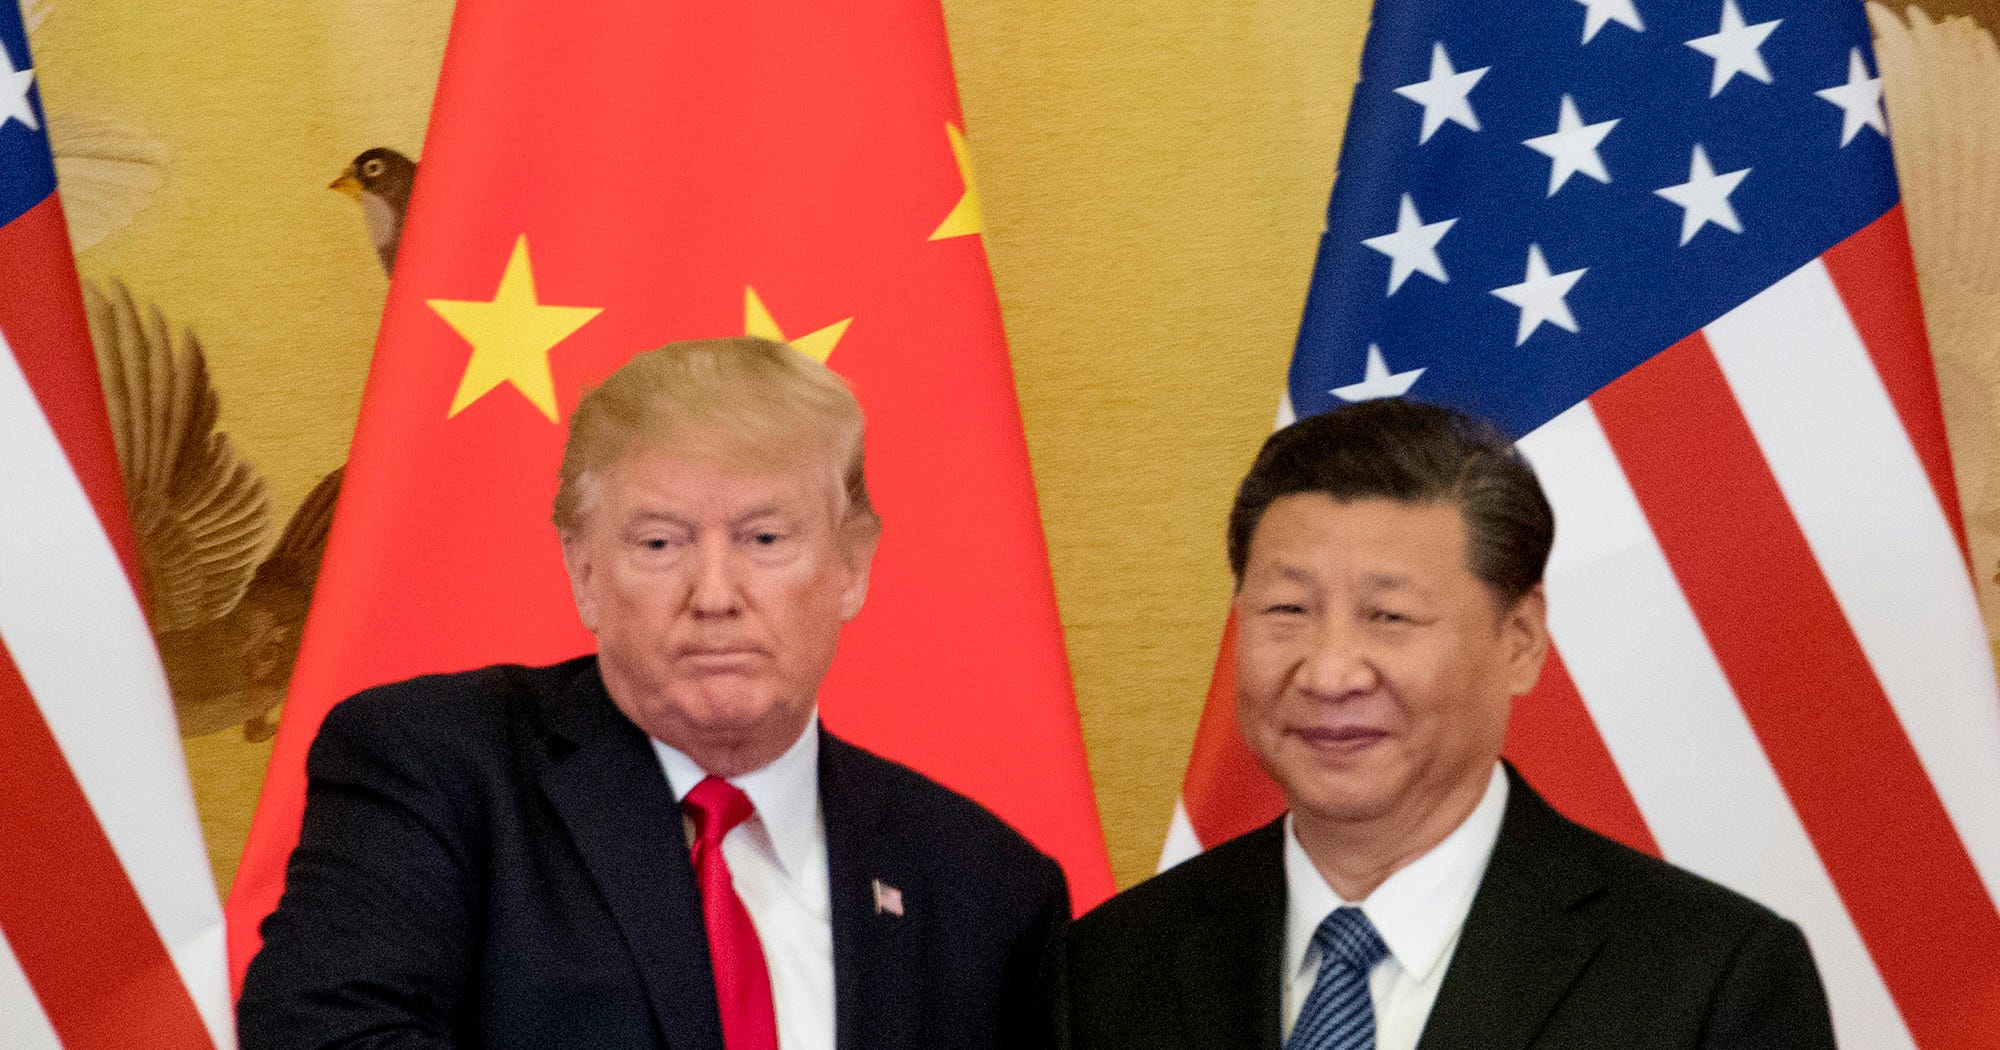 Trump Thinks Xi Jinping As President For Life Is Good